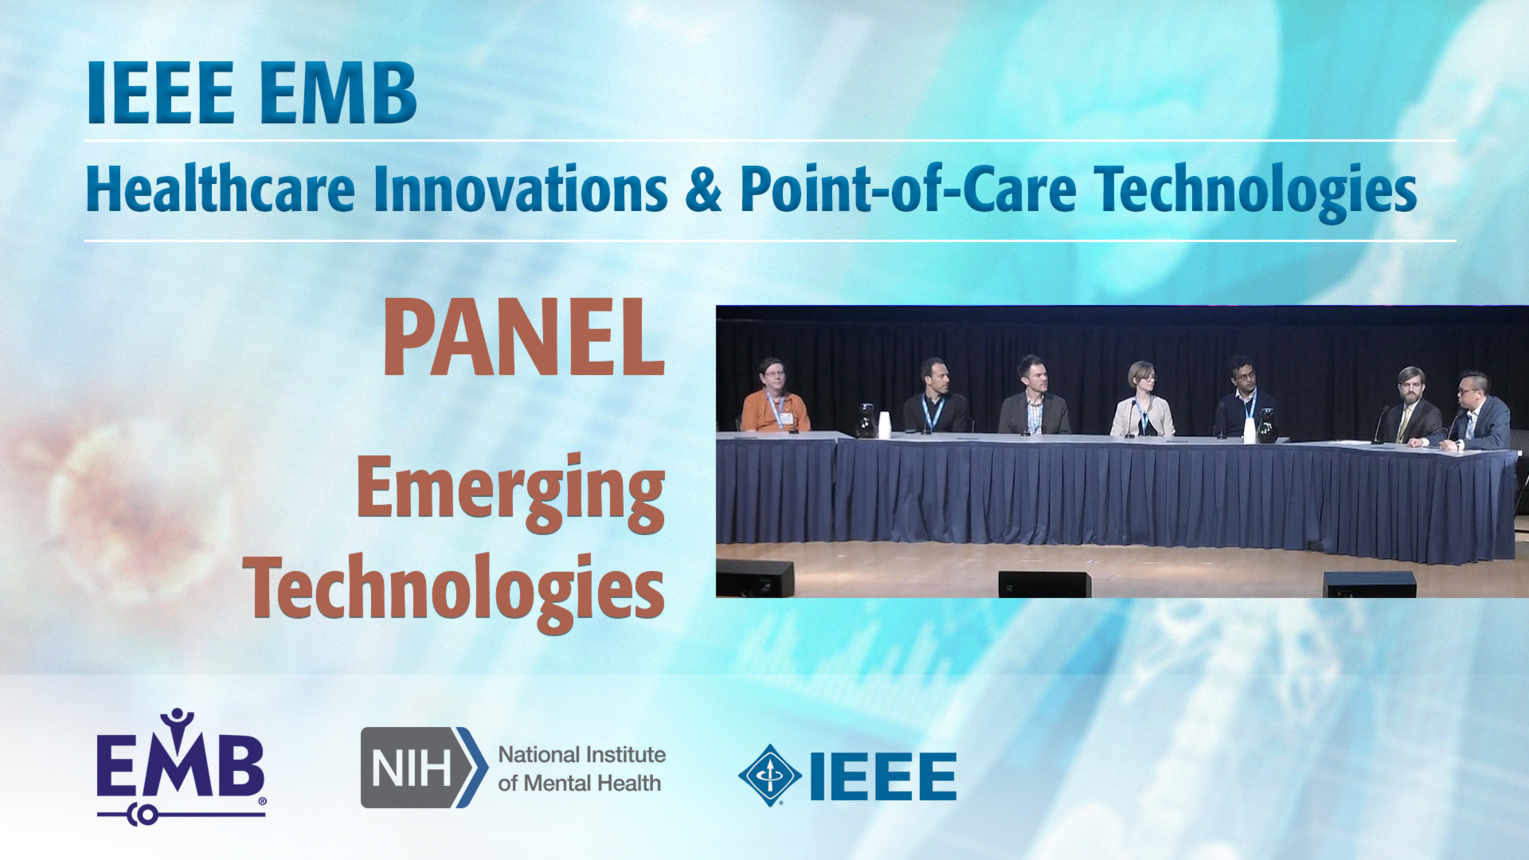 Panel: Emerging Technologies for Health & Wellness Across the Lifespan - IEEE EMBS at NIH, 2019